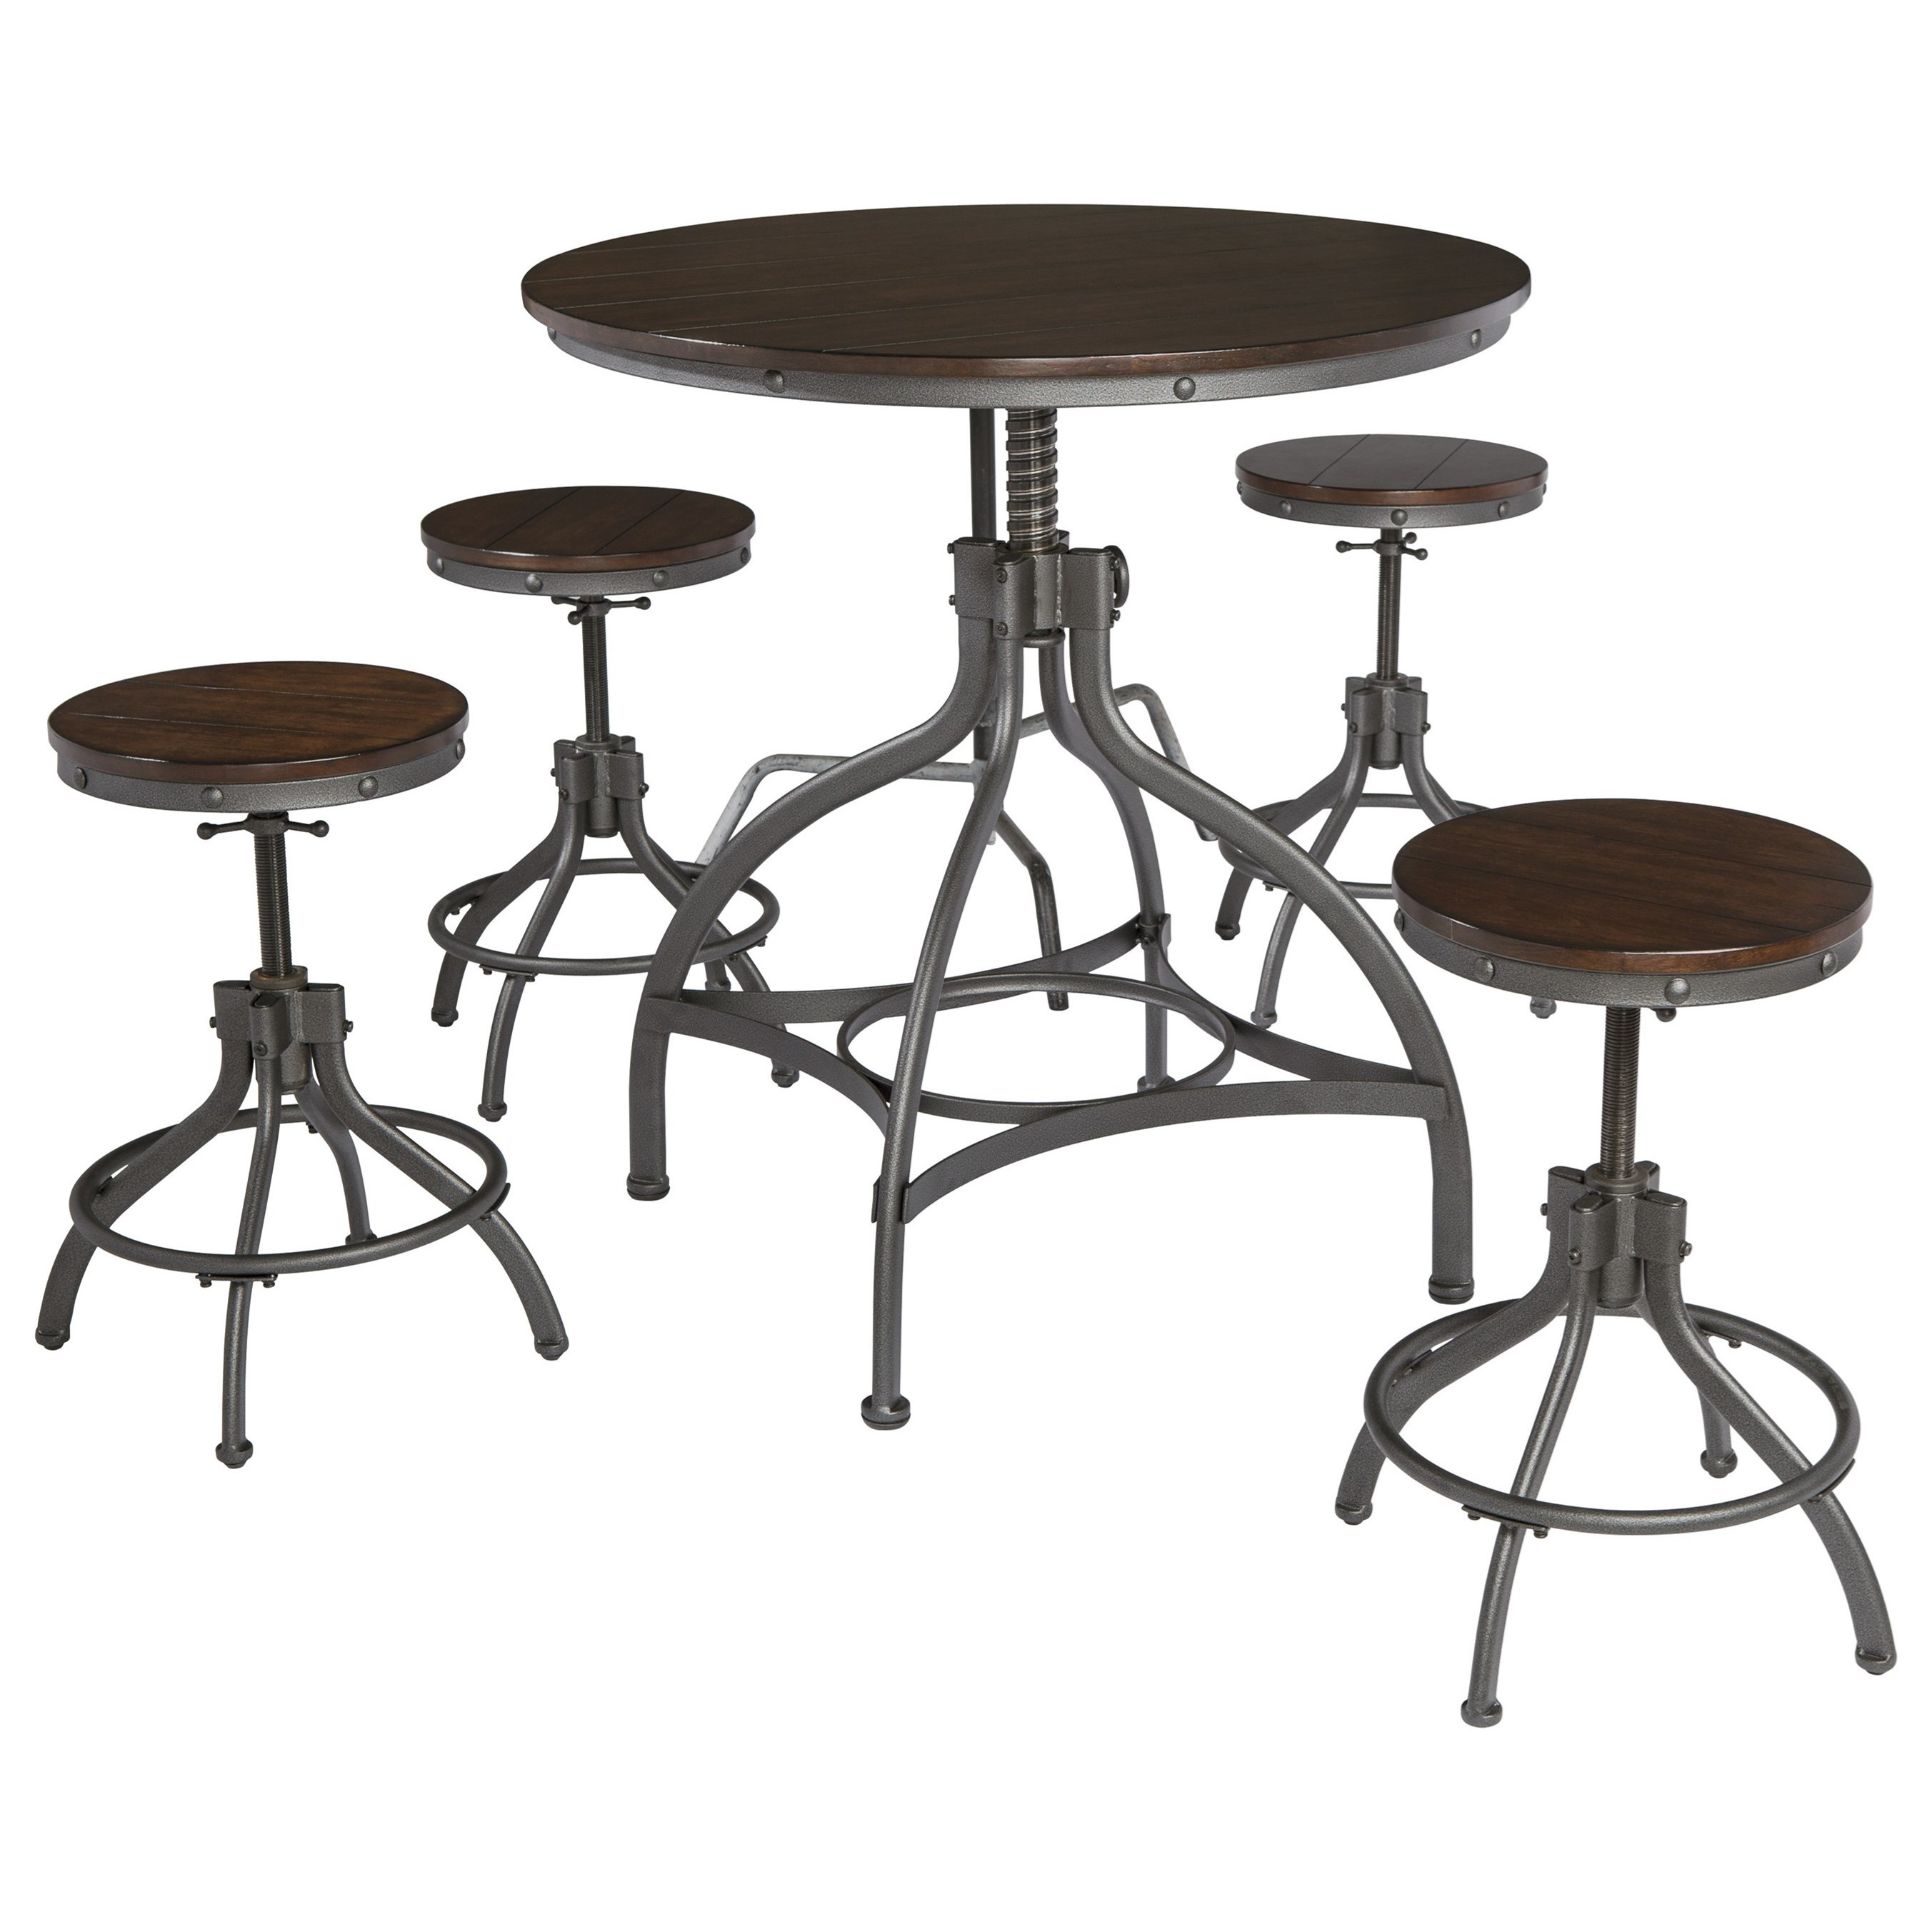 Signature Design by Ashley Odium 5-Piece Dining Room Counter Table Set - Item Number: D284-223